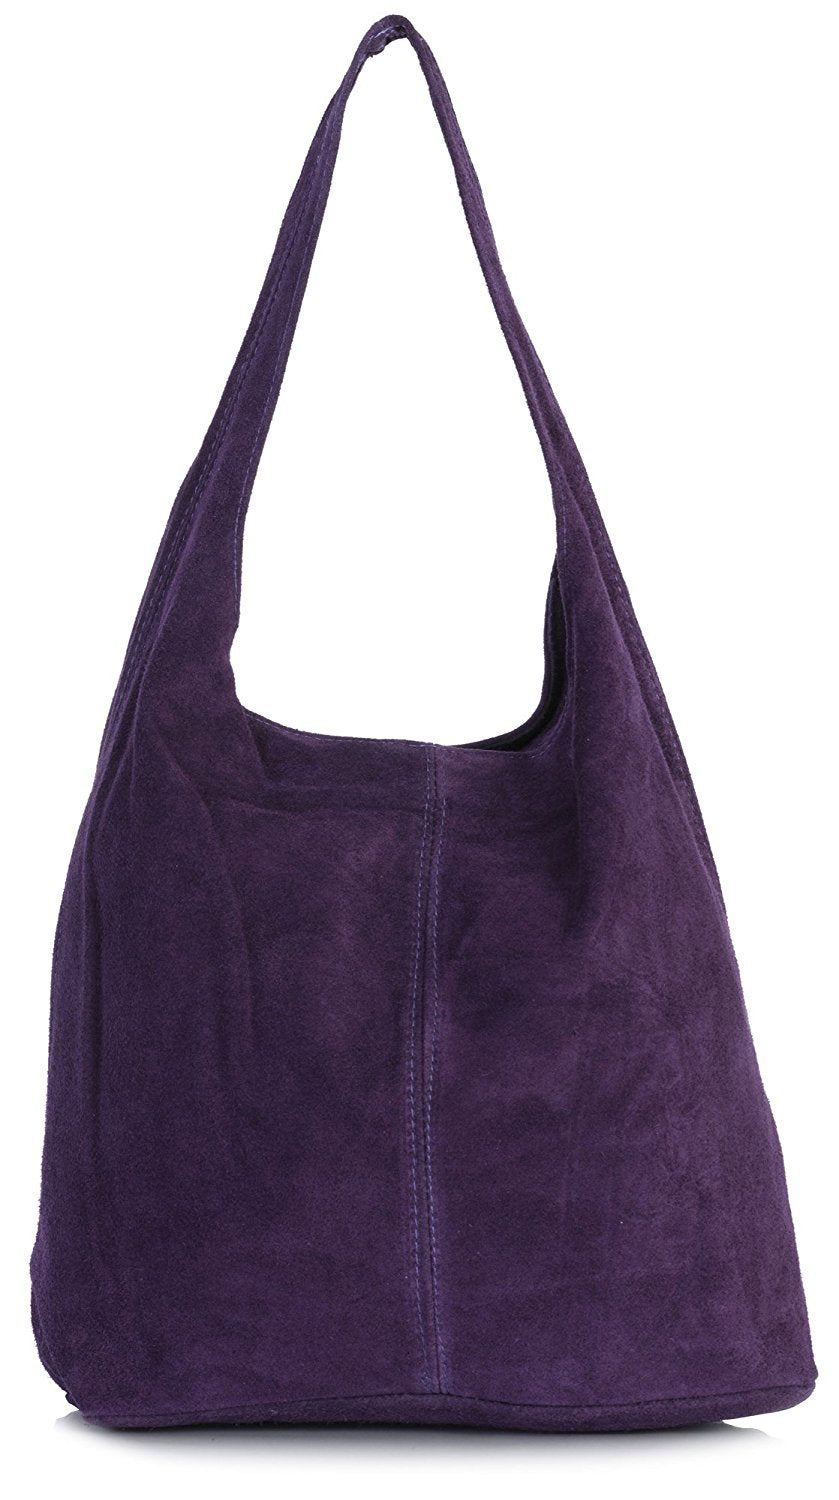 2f99f4a2ed LiaTalia Large Real Italian Suede Leather Single Shoulder Strap Hobo Slouch  Bag - Shay